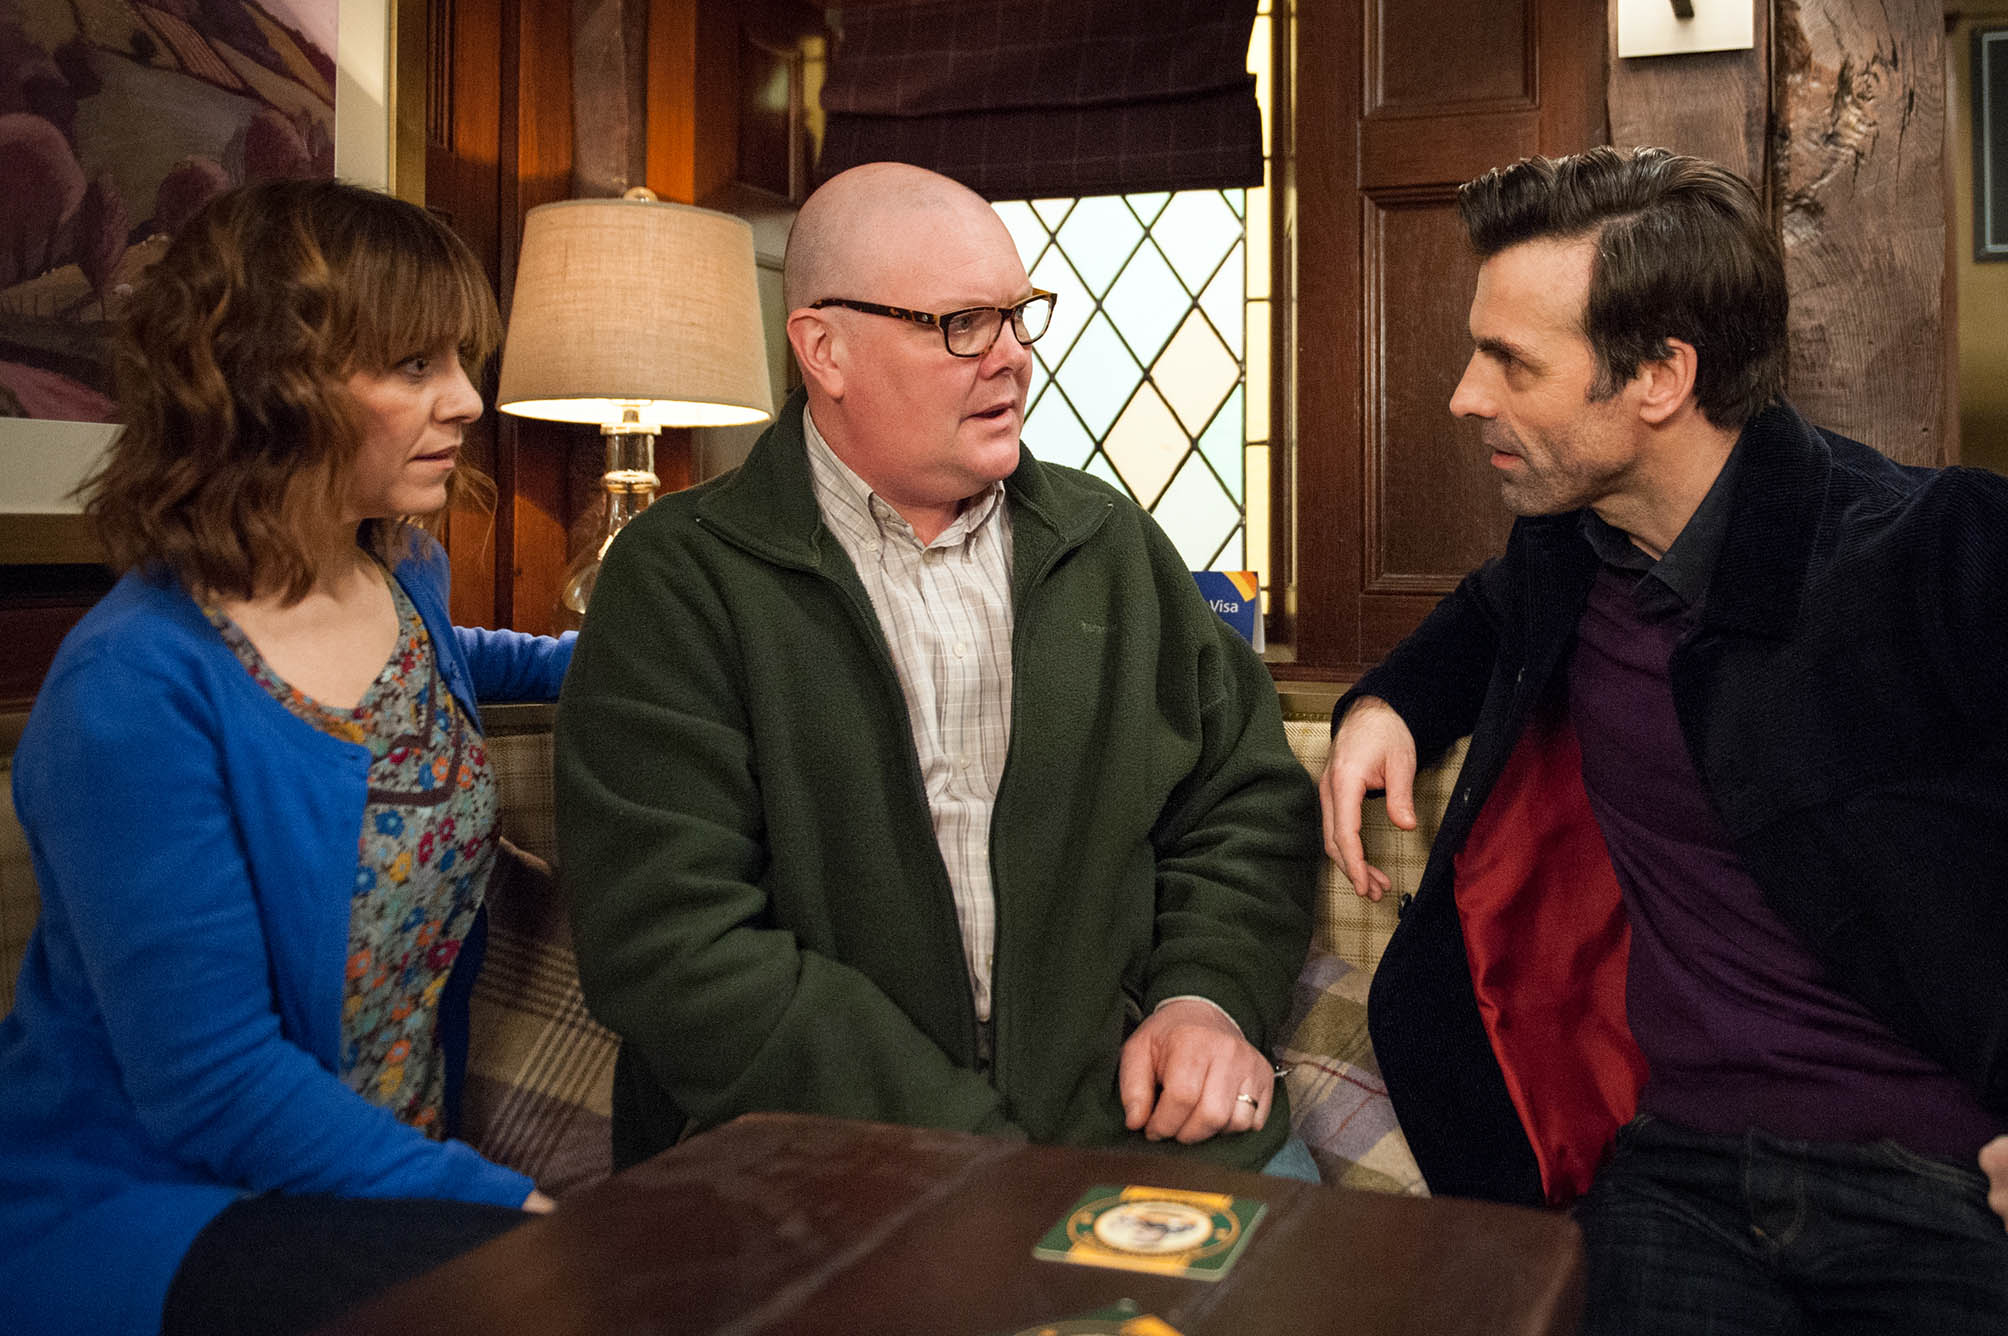 FROM ITV STRICT EMBARGO - No Use Before Tuesday 15 March 2016 Emmerdale - Ep 7456 Tuesday 22 March 2016 Paddy Kirk [DOMINIC BRUNT and Rhona Goskirk [ZOE HENRY] are both pleased to be making some progress as they agree to meet for lunch. Paddy's positive as he suggests they go away to Paris for the weekend, but the moment's ruined when Pierce [JONATHAN WRATHER] turns up, asking if Tess was having an affair. He tells them he's found Tess' second phone and Paddy's horrified when Rhona agrees to talk with him tomorrow Picture contact: david.crook@itv.com on 0161 952 6214 Photographer - Andrew Boyce This photograph is (C) ITV Plc and can only be reproduced for editorial purposes directly in connection with the programme or event mentioned above, or ITV plc. Once made available by ITV plc Picture Desk, this photograph can be reproduced once only up until the transmission [TX] date and no reproduction fee will be charged. Any subsequent usage may incur a fee. This photograph must not be manipulated [excluding basic cropping] in a manner which alters the visual appearance of the person photographed deemed detrimental or inappropriate by ITV plc Picture Desk. This photograph must not be syndicated to any other company, publication or website, or permanently archived, without the express written permission of ITV Plc Picture Desk. Full Terms and conditions are available on the website www.itvpictur